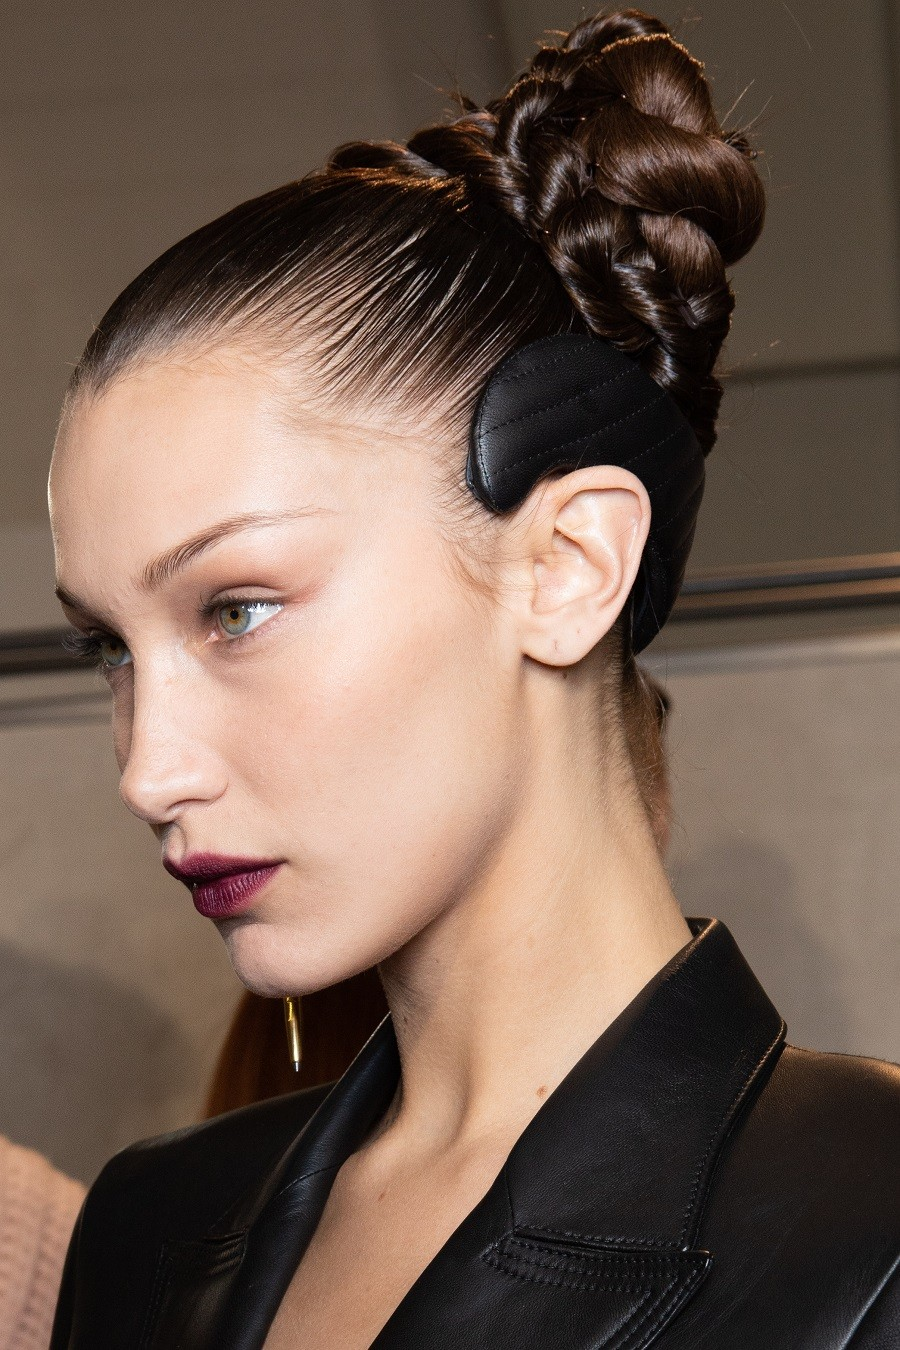 milan-fashion-week-beauty-fendi-bella-hadid.jpg